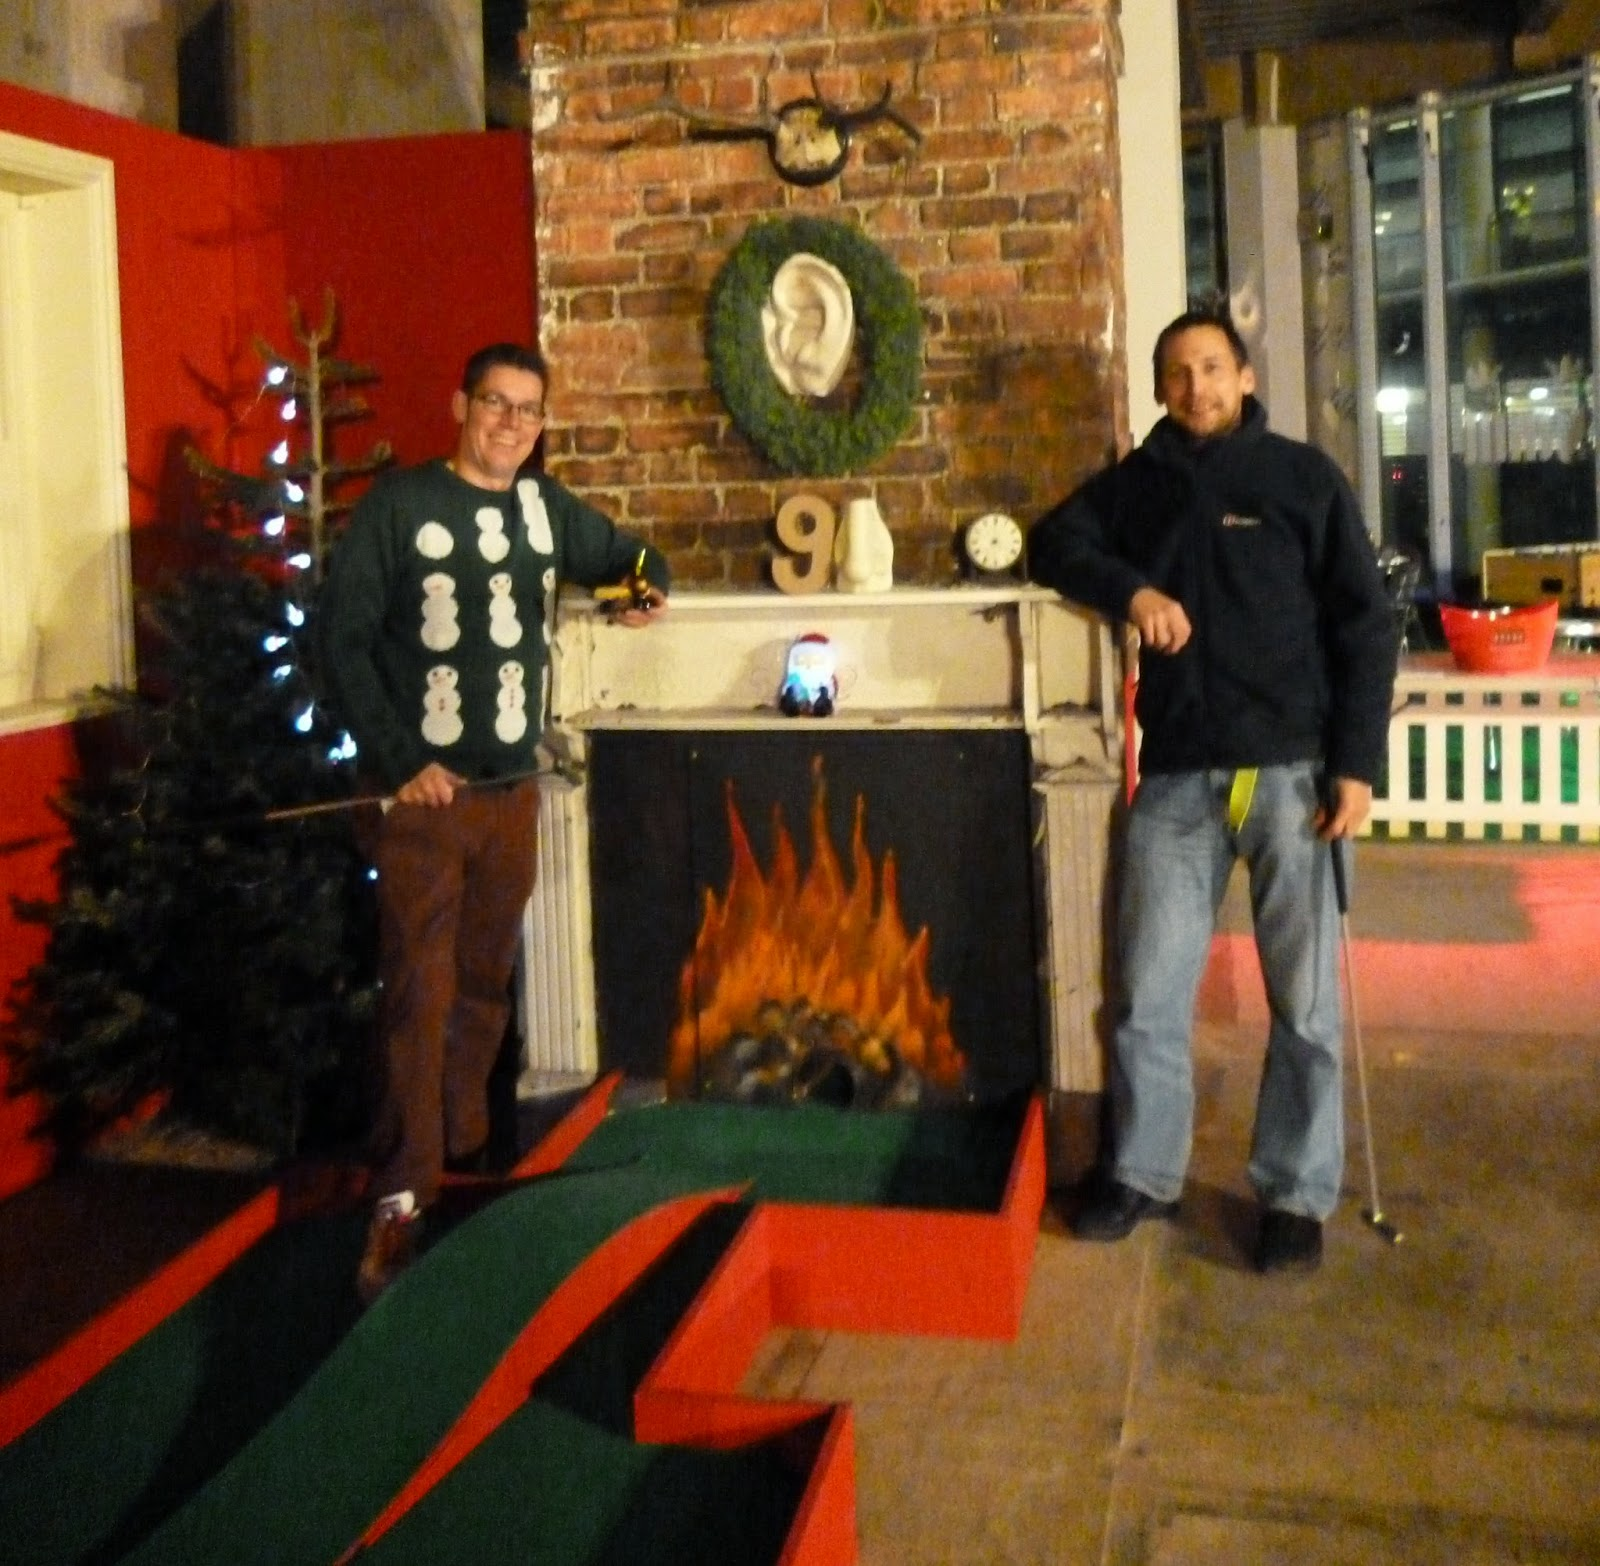 'Squire' Richard Gottfried and John 'Thighs' Moore at the Christmas-themed Minigolf 'Chrizy Golf' course in Manchester (2012)